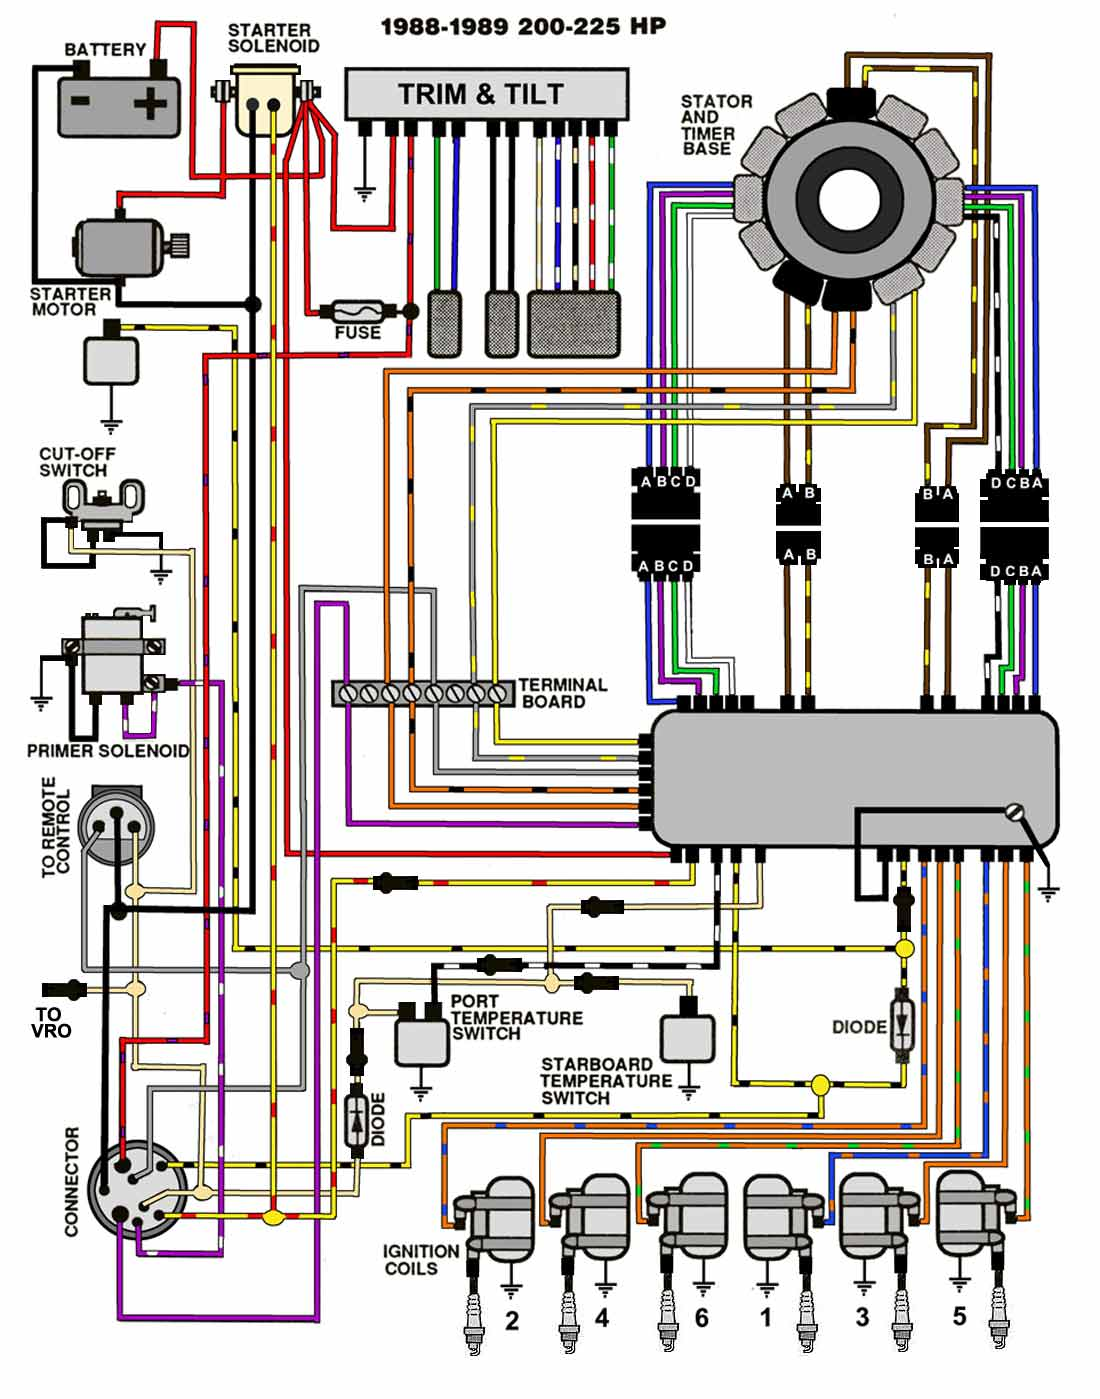 1988_89_200_225 mastertech marine evinrude johnson outboard wiring diagrams  at virtualis.co